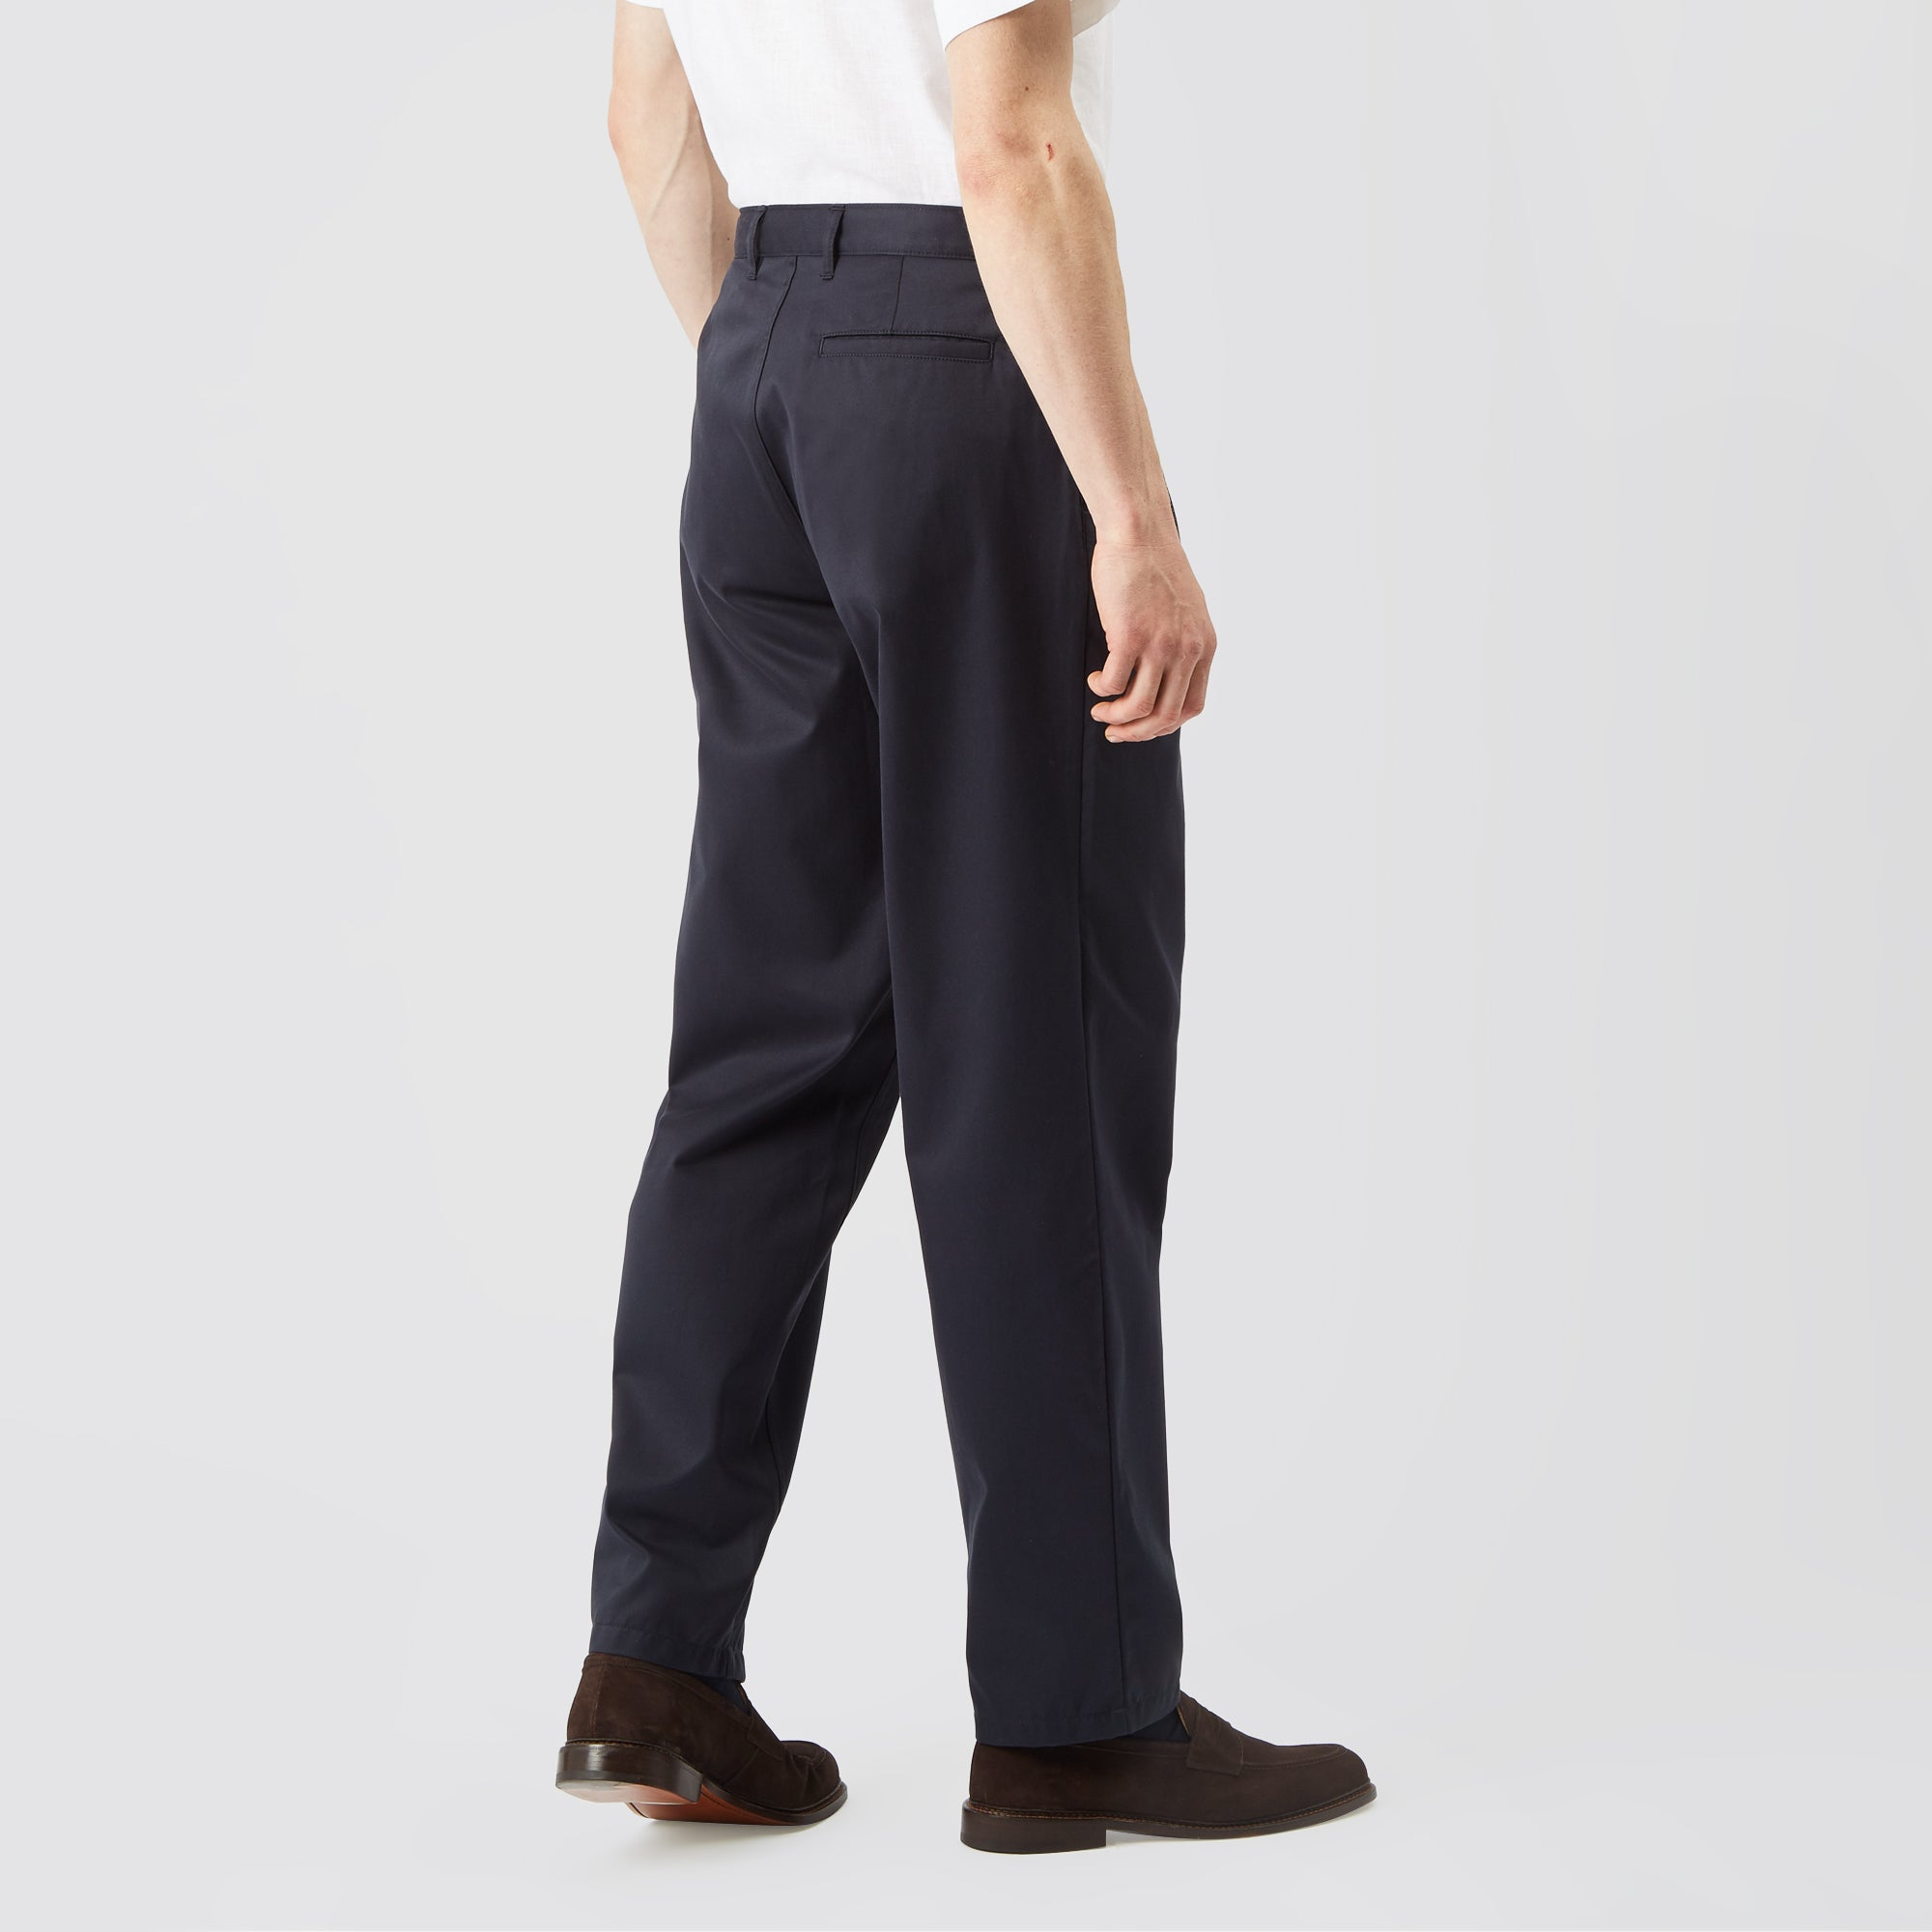 differently Sales promotion great discount sale Men's Cotton Chino - Pleated - Navy